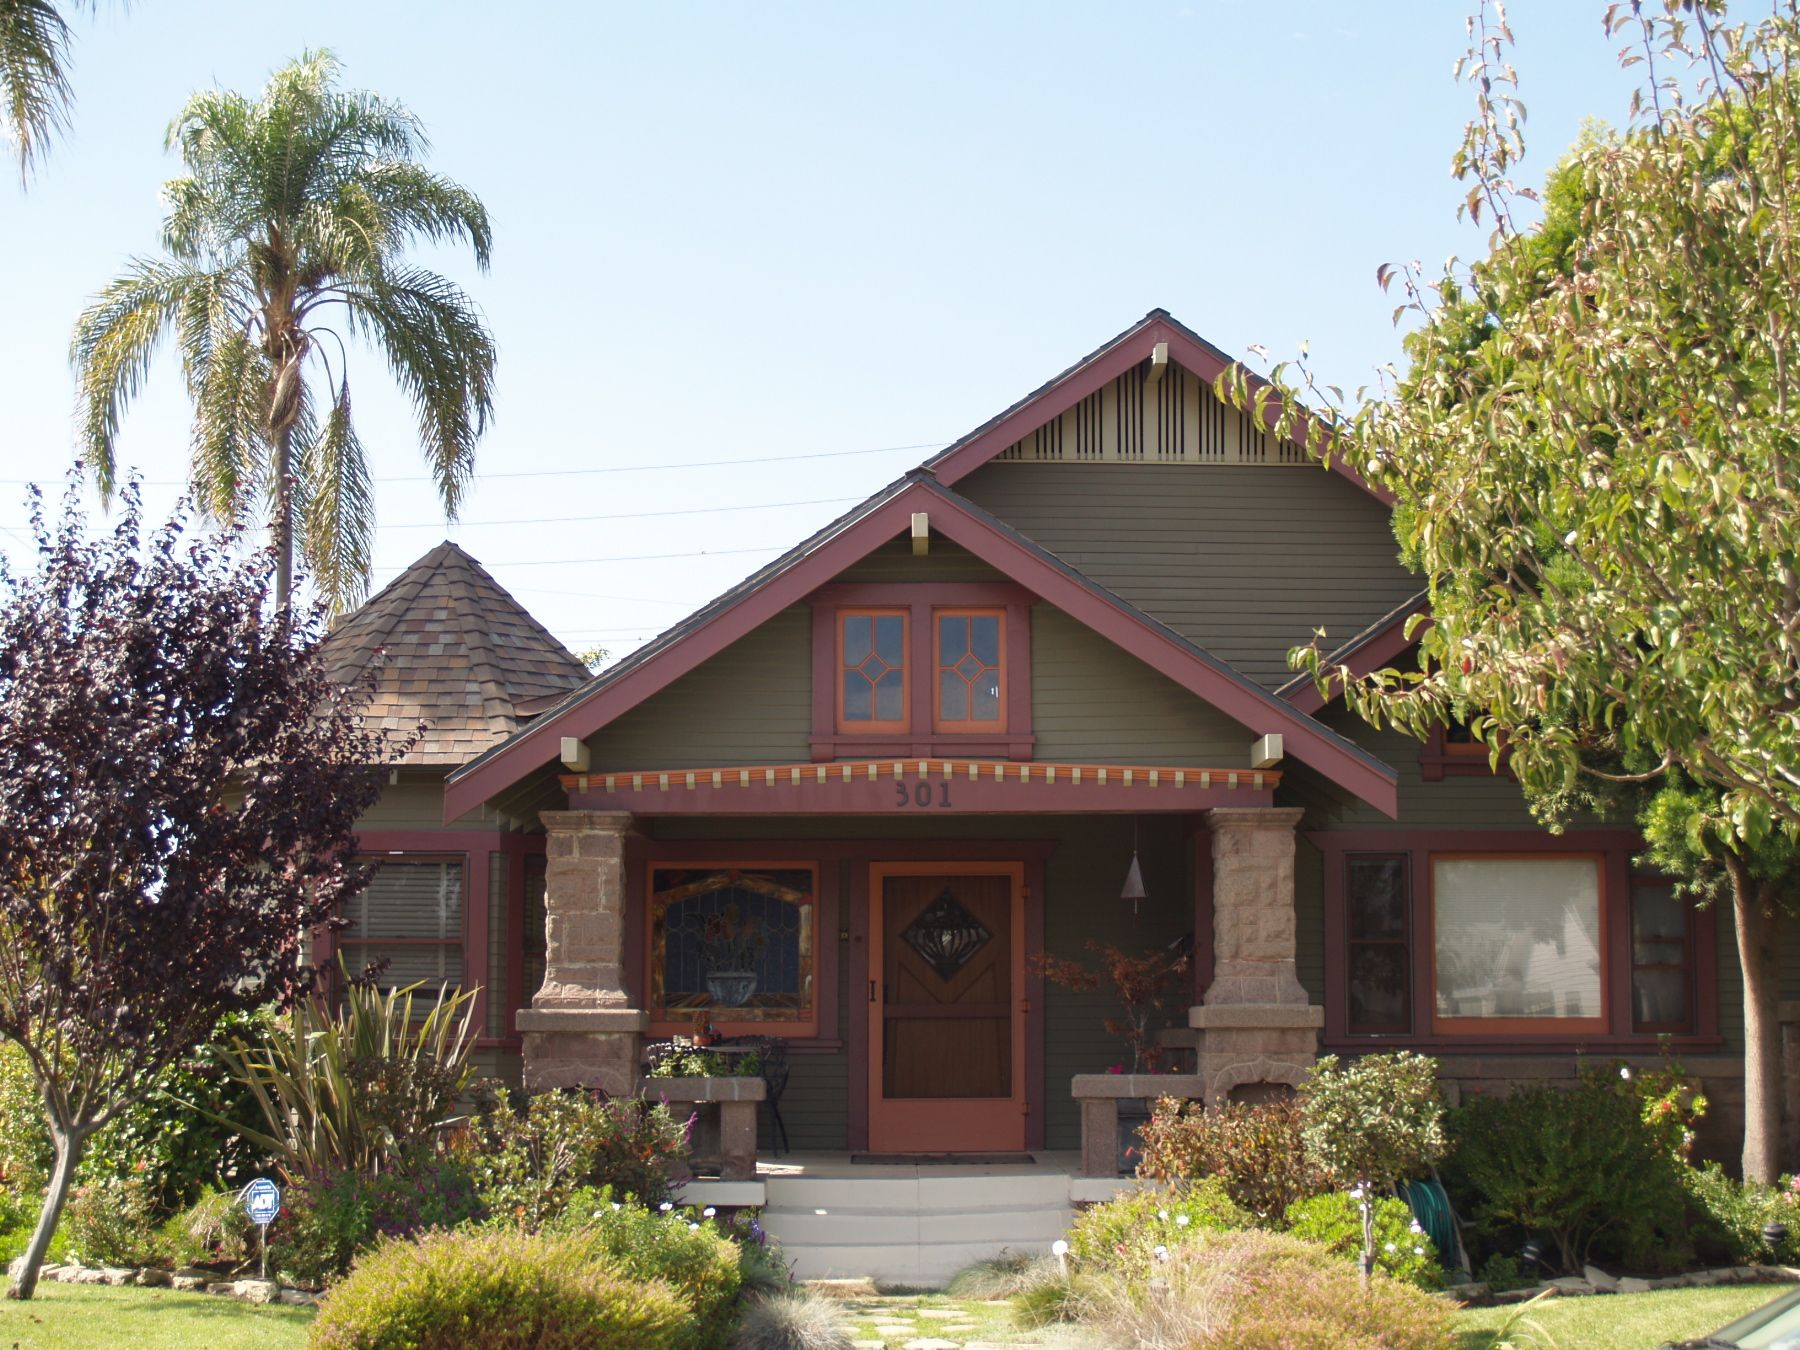 Miner smith craftsman bungalow house in long beach for Craftsman beach house